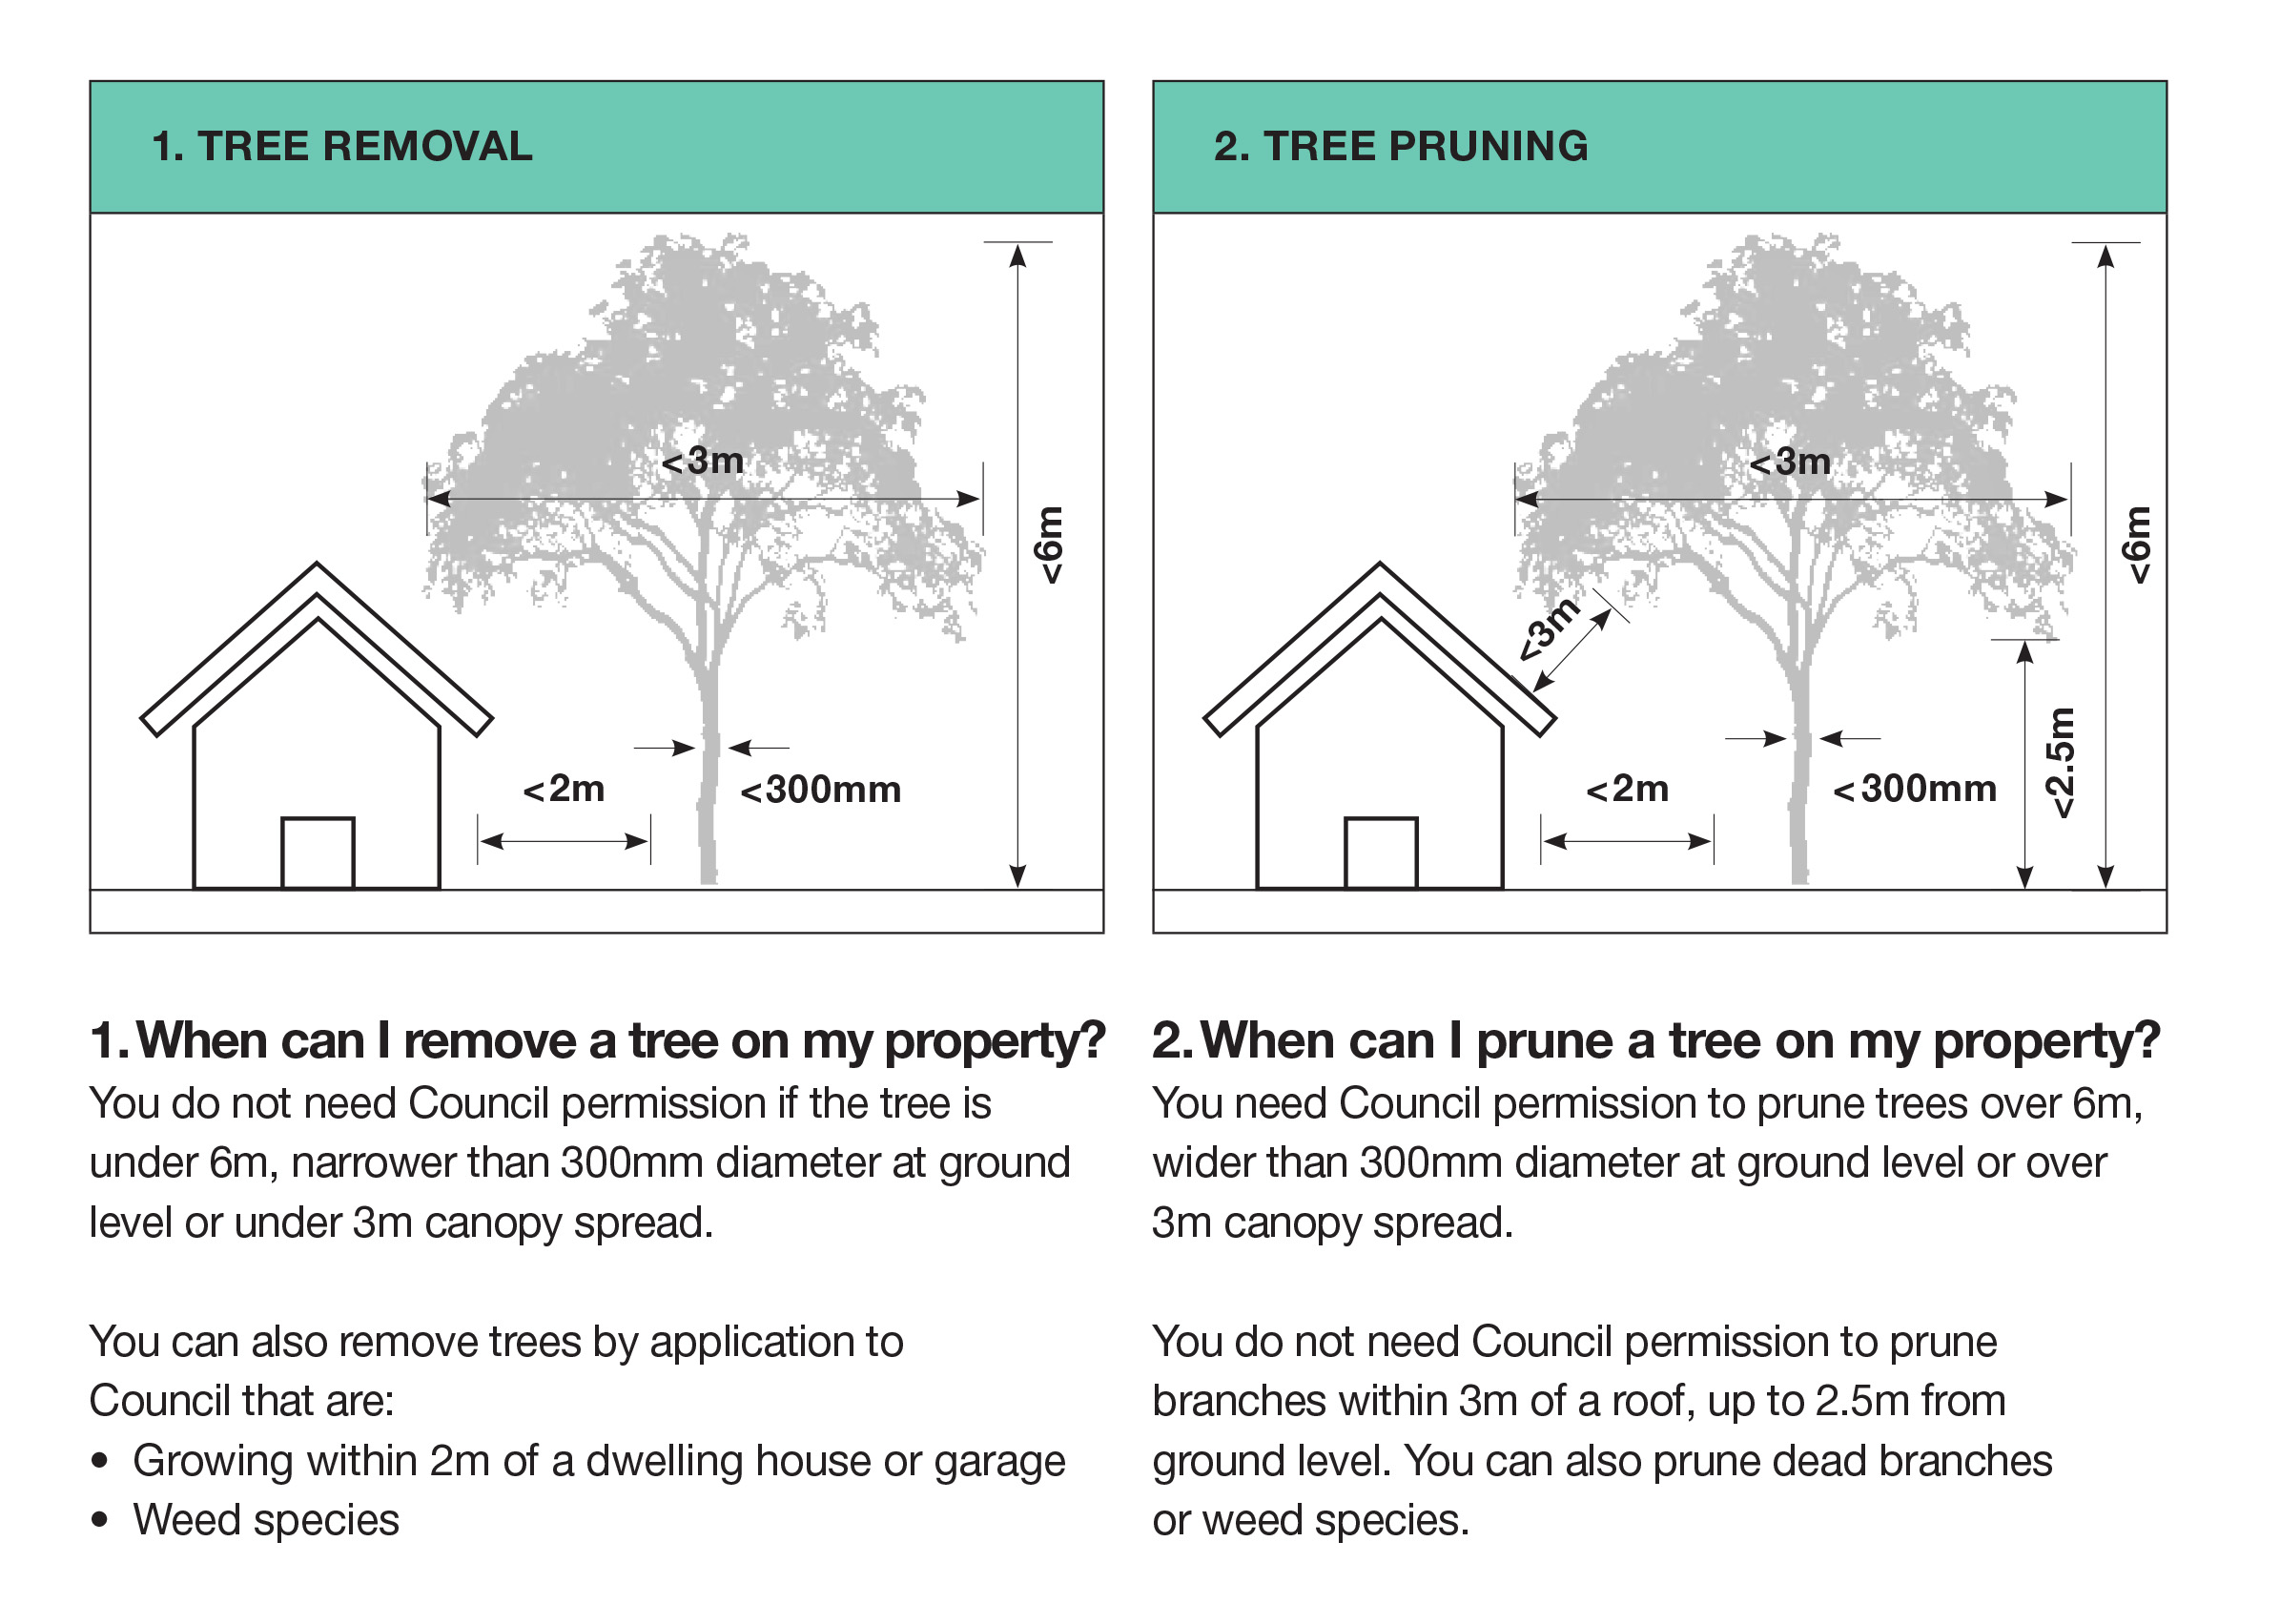 1. When can I remove a tree on my property? You do not need Council permission if the tree is under 6m, narrower than 300mm diameter at ground level or under 3m canopy spread. You can also remove trees by application to Council that are: • Growing within 2m of a dwelling house or garage • Weed species 2. When can I prune a tree on my property? You need Council permission to prune trees over 6m, wider than 300mm diameter at ground level or over 3m canopy spread. You do not need Council permission to prune branches within 3m of a roof, up to 2.5m from ground level. You can also prune dead branches or weed species.